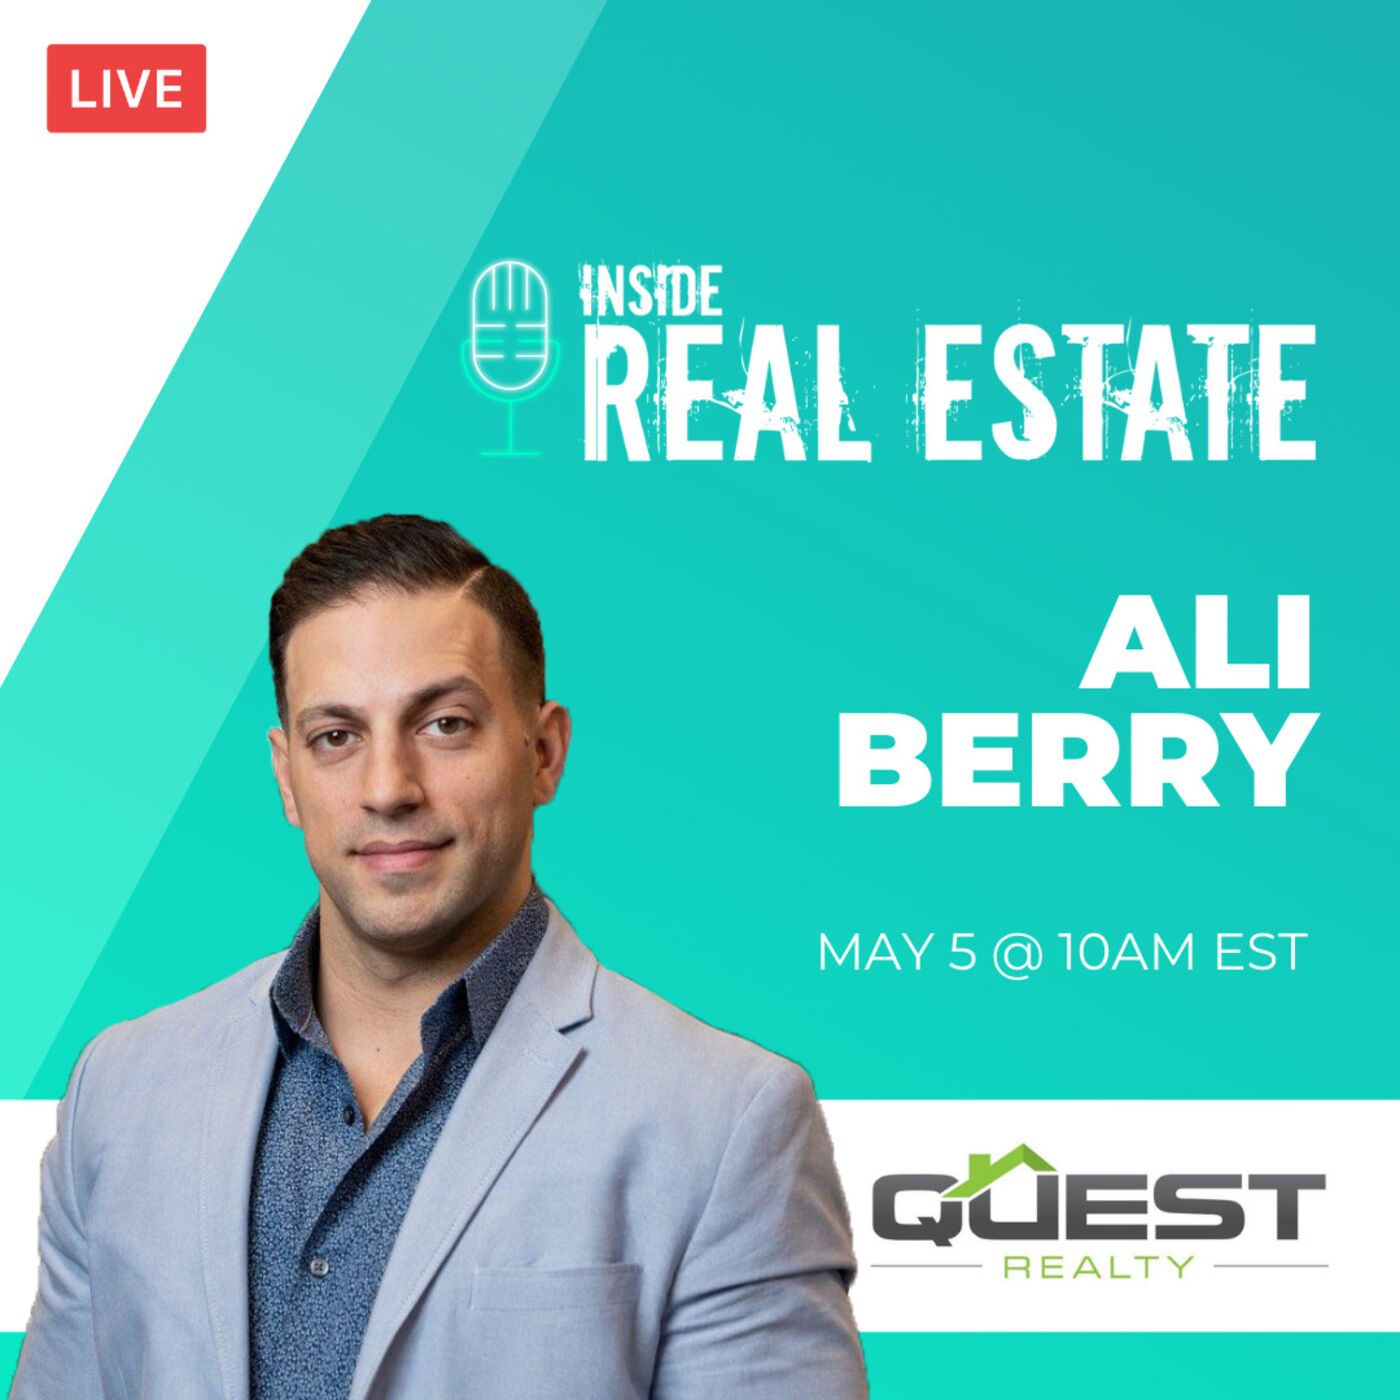 Ali Berry, Quest Realty - Being a Successful Agent, Client Experience and More